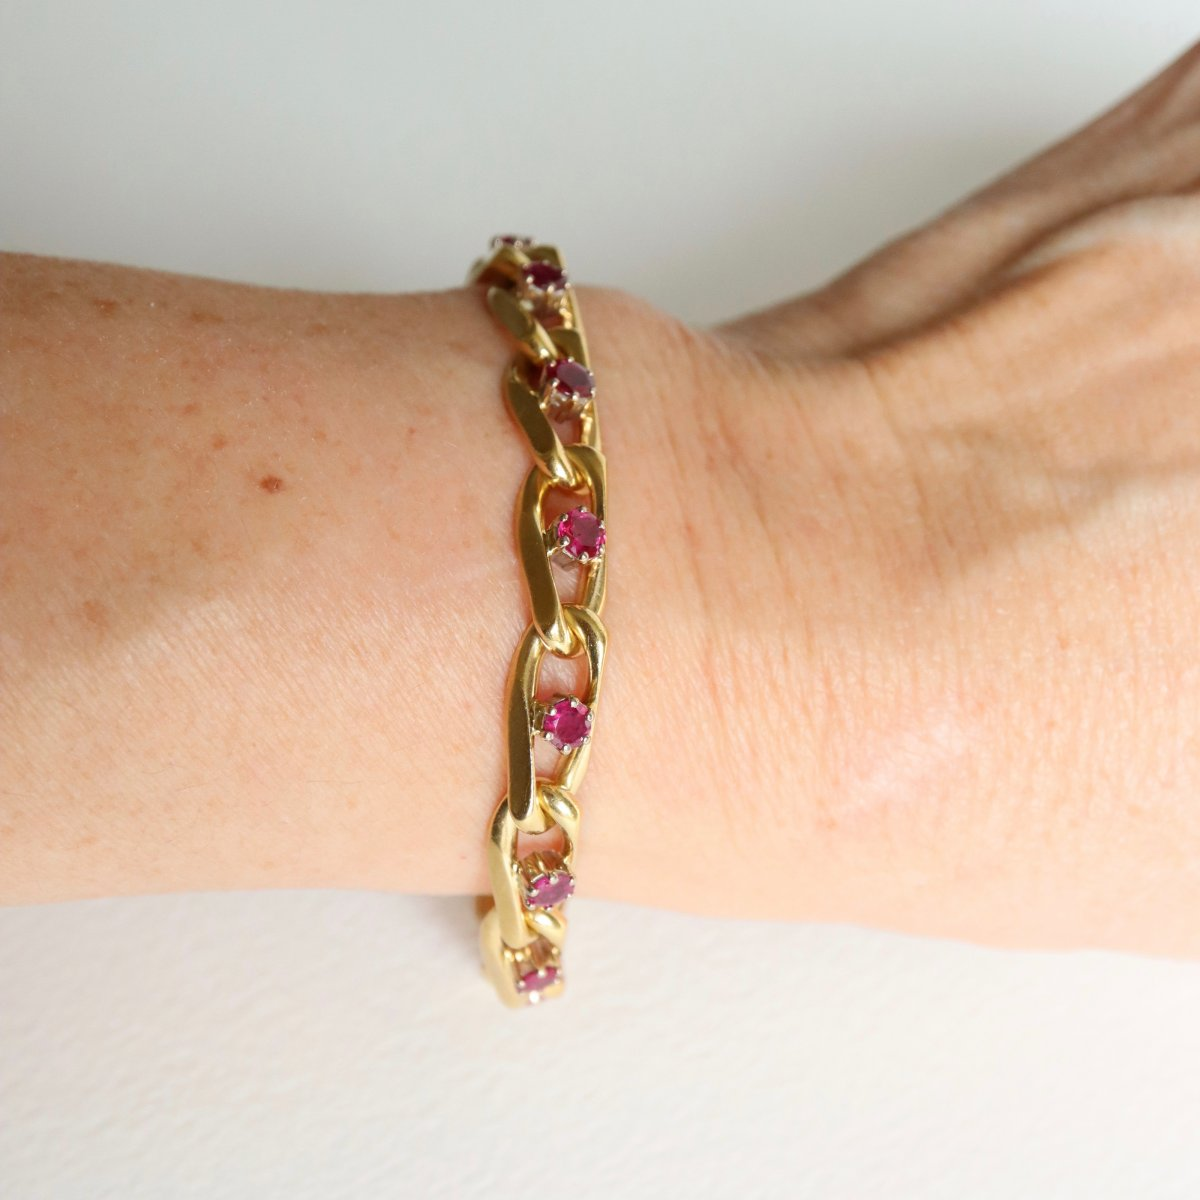 Chaumet Bracelet In 18kt Yellow Gold And Ruby-photo-1